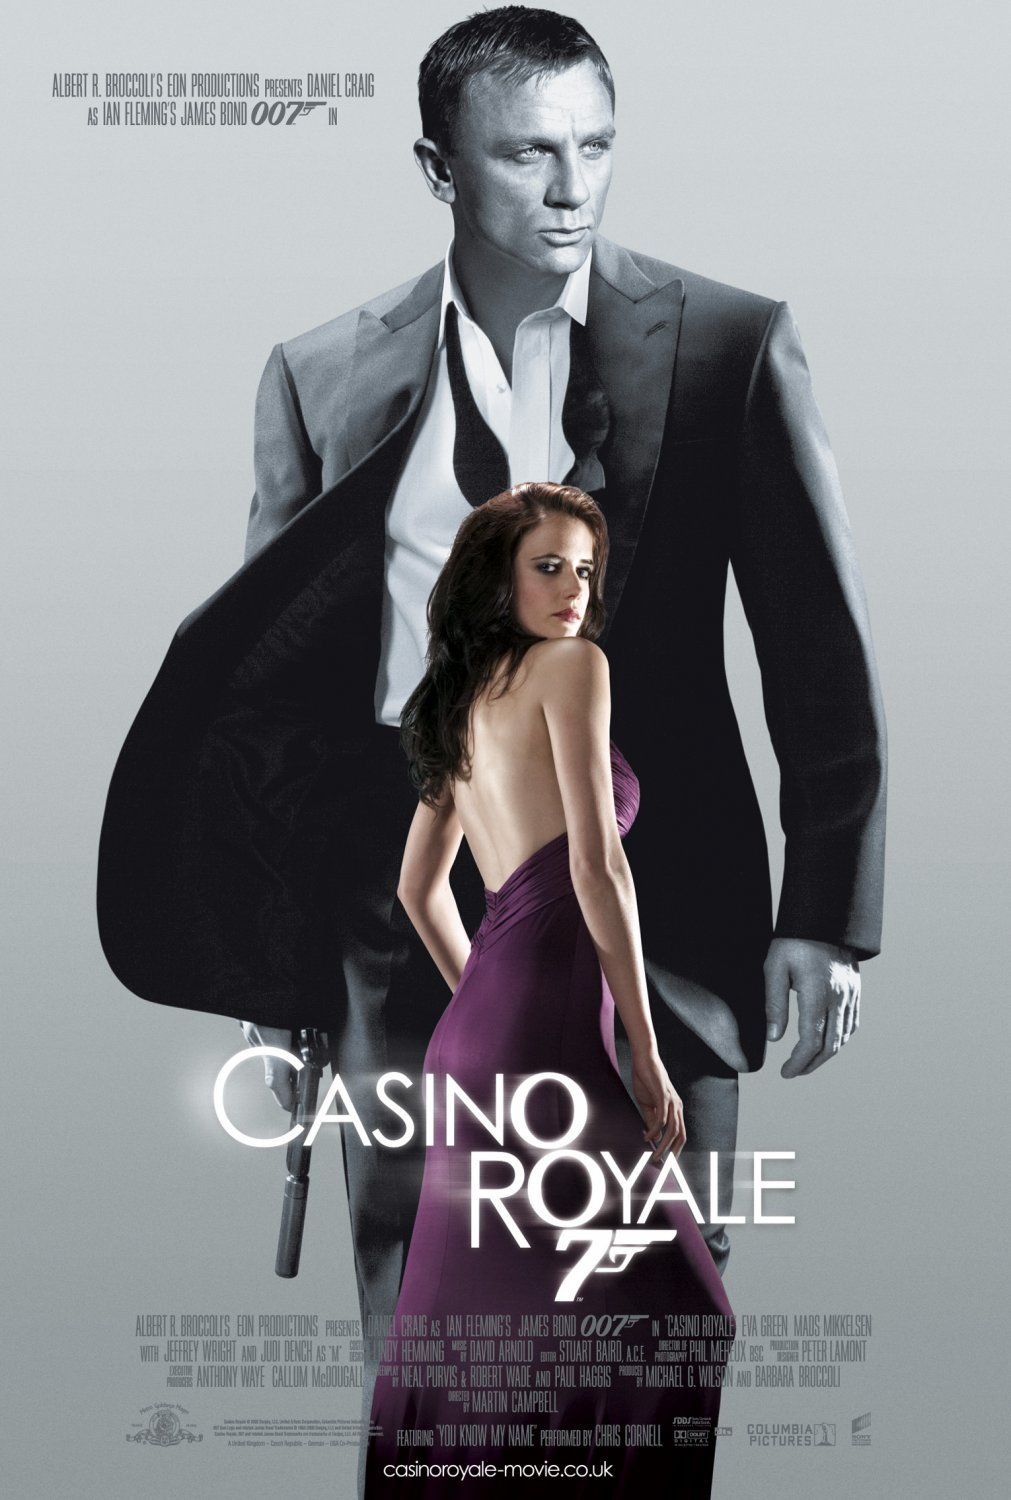 james bond casino royal old